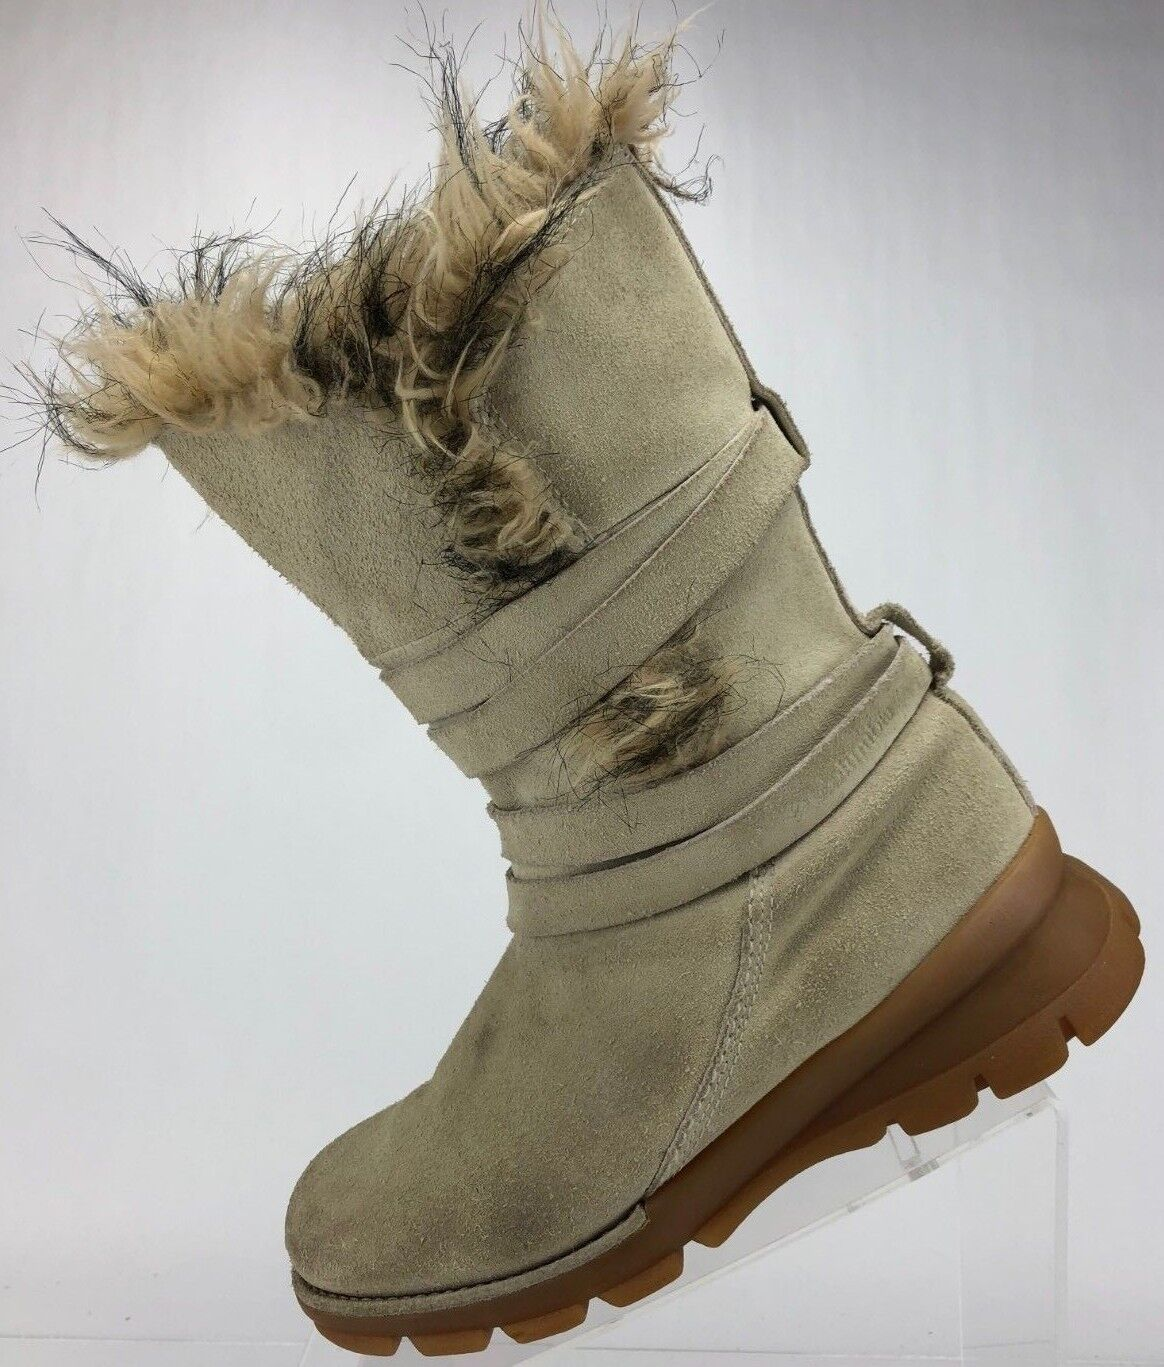 Columbia Winter Boots Faux Fur Shearling Mid Calf Chatel shoes Womens 7 Beige